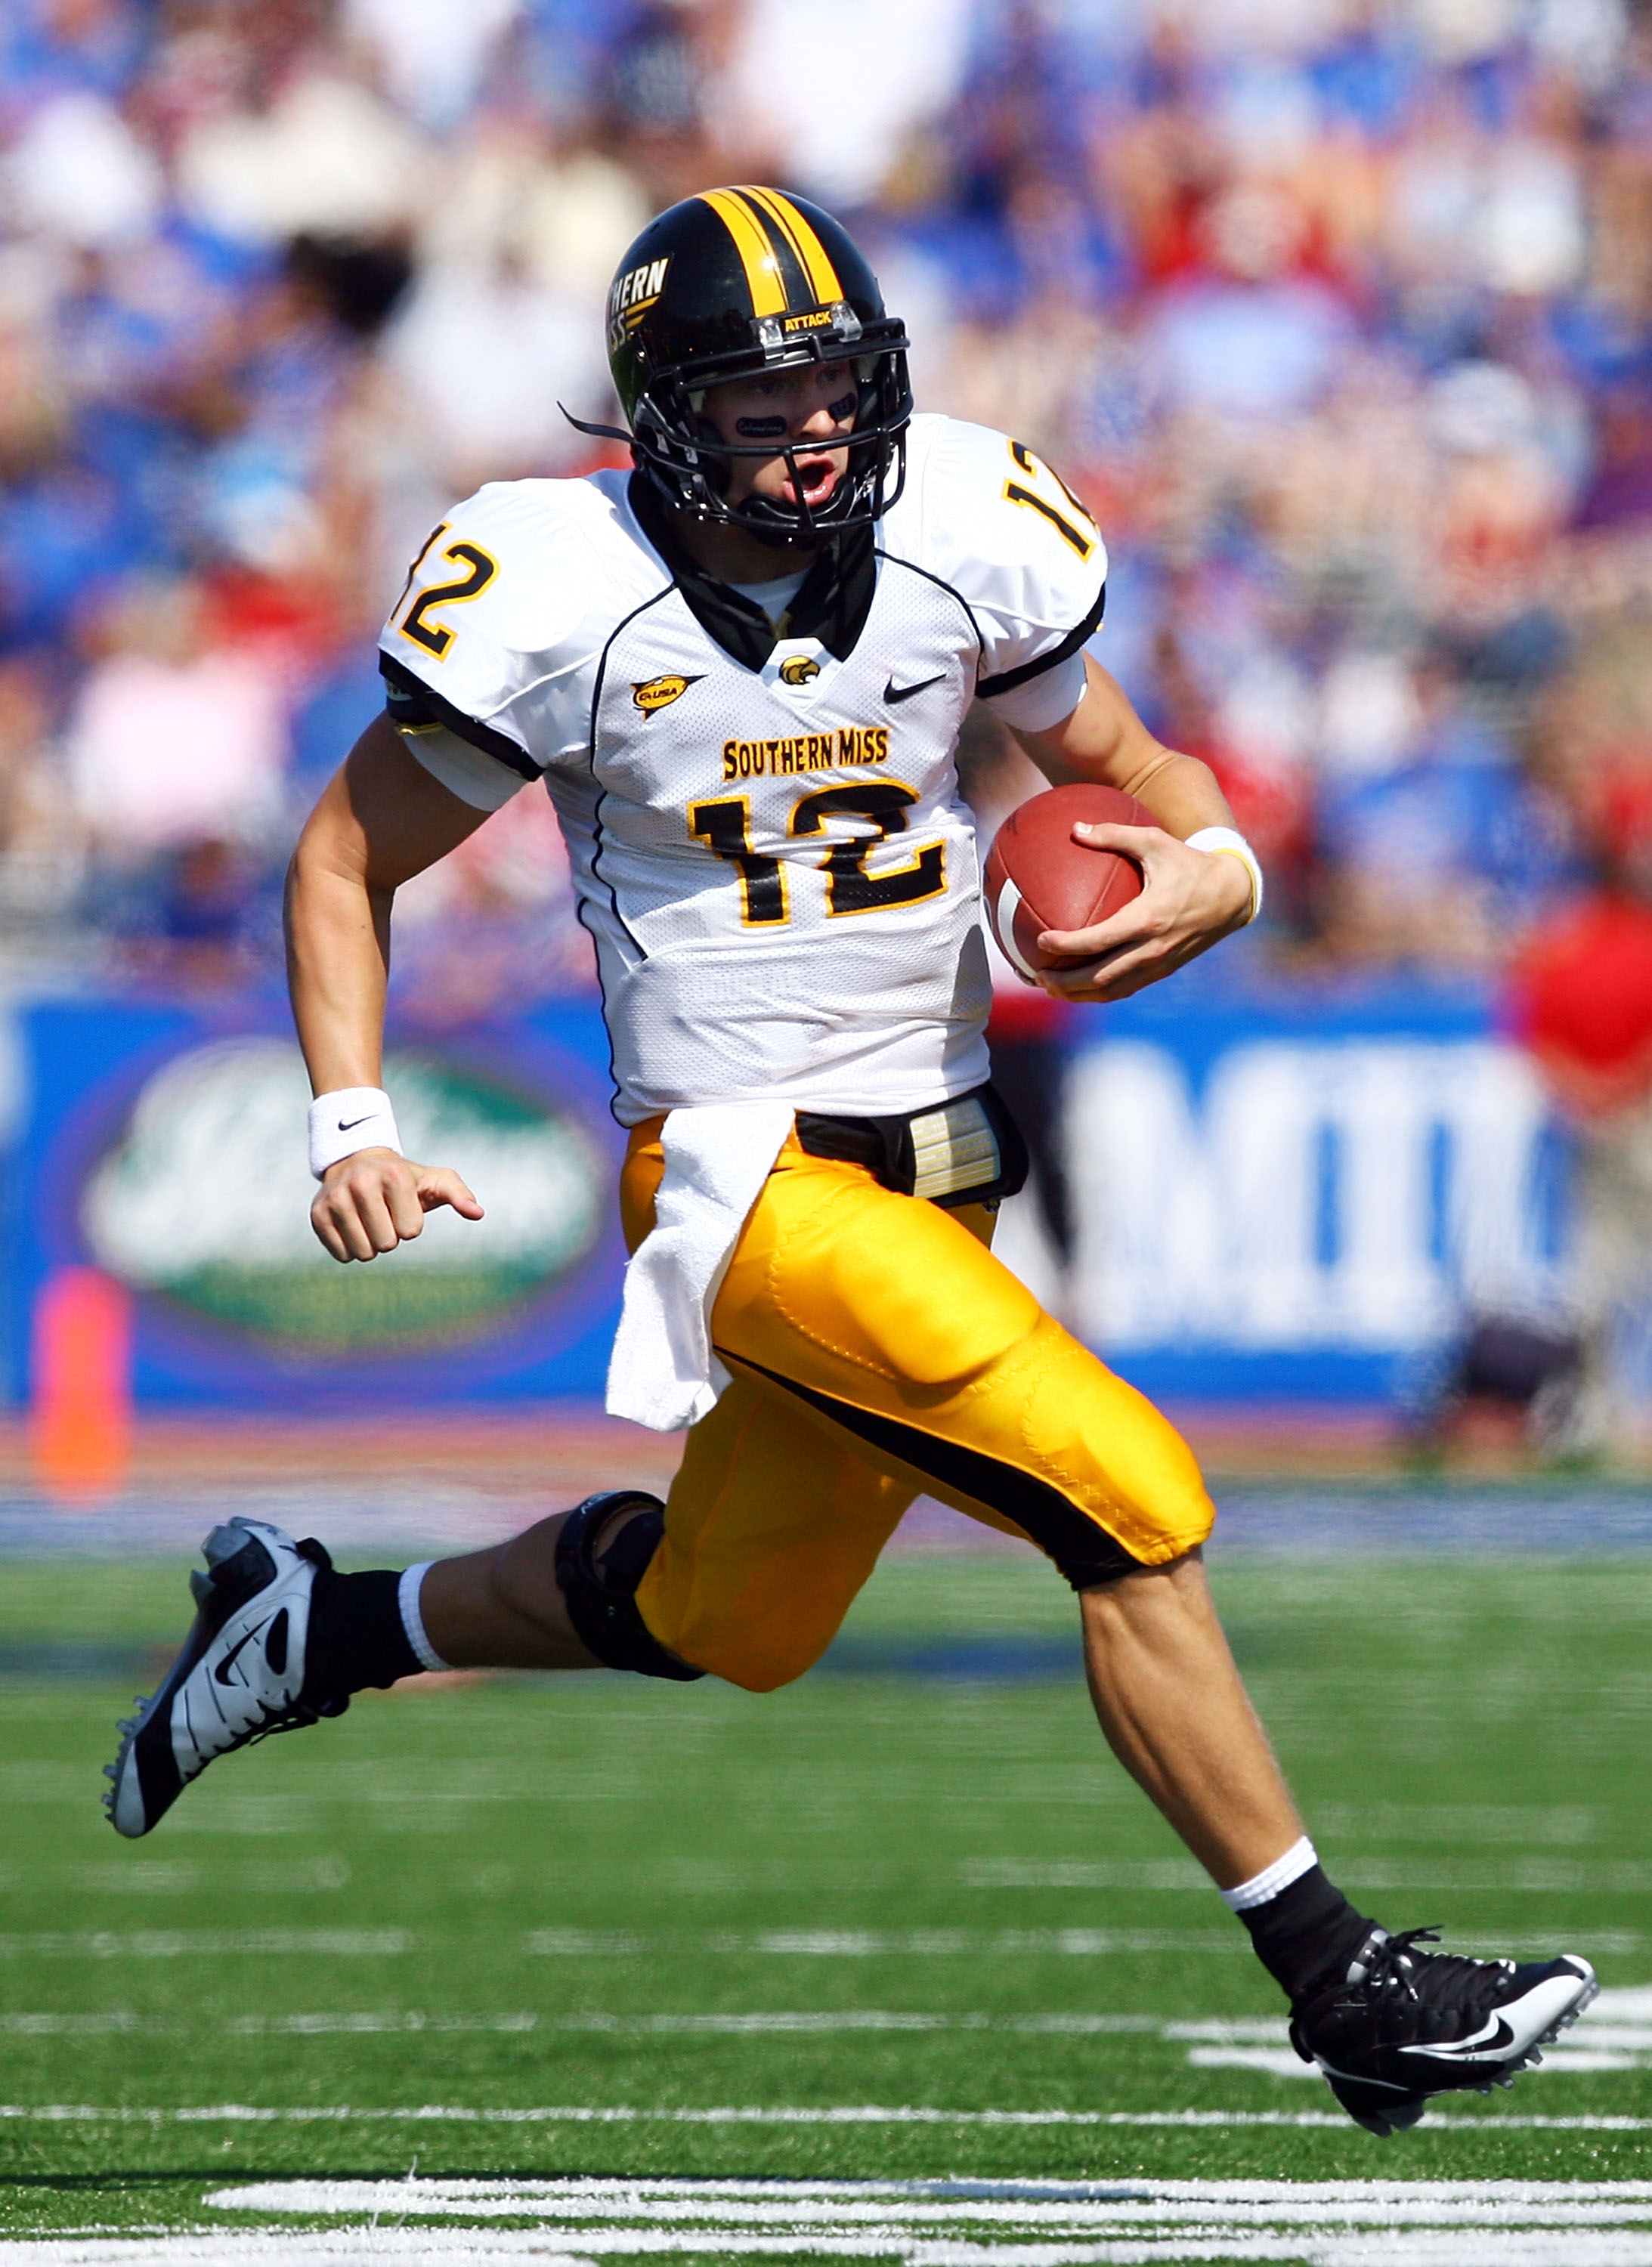 LAWRENCE, KS - SEPTEMBER 26:  Quarterback Austin Davis #12 of the Southern Mississippi Golden Eagles scrambles during the game against the Kansas Jayhawks on September 26, 2009 at Memorial Stadium in Lawrence, Kansas.  (Photo by Jamie Squire/Getty Images)